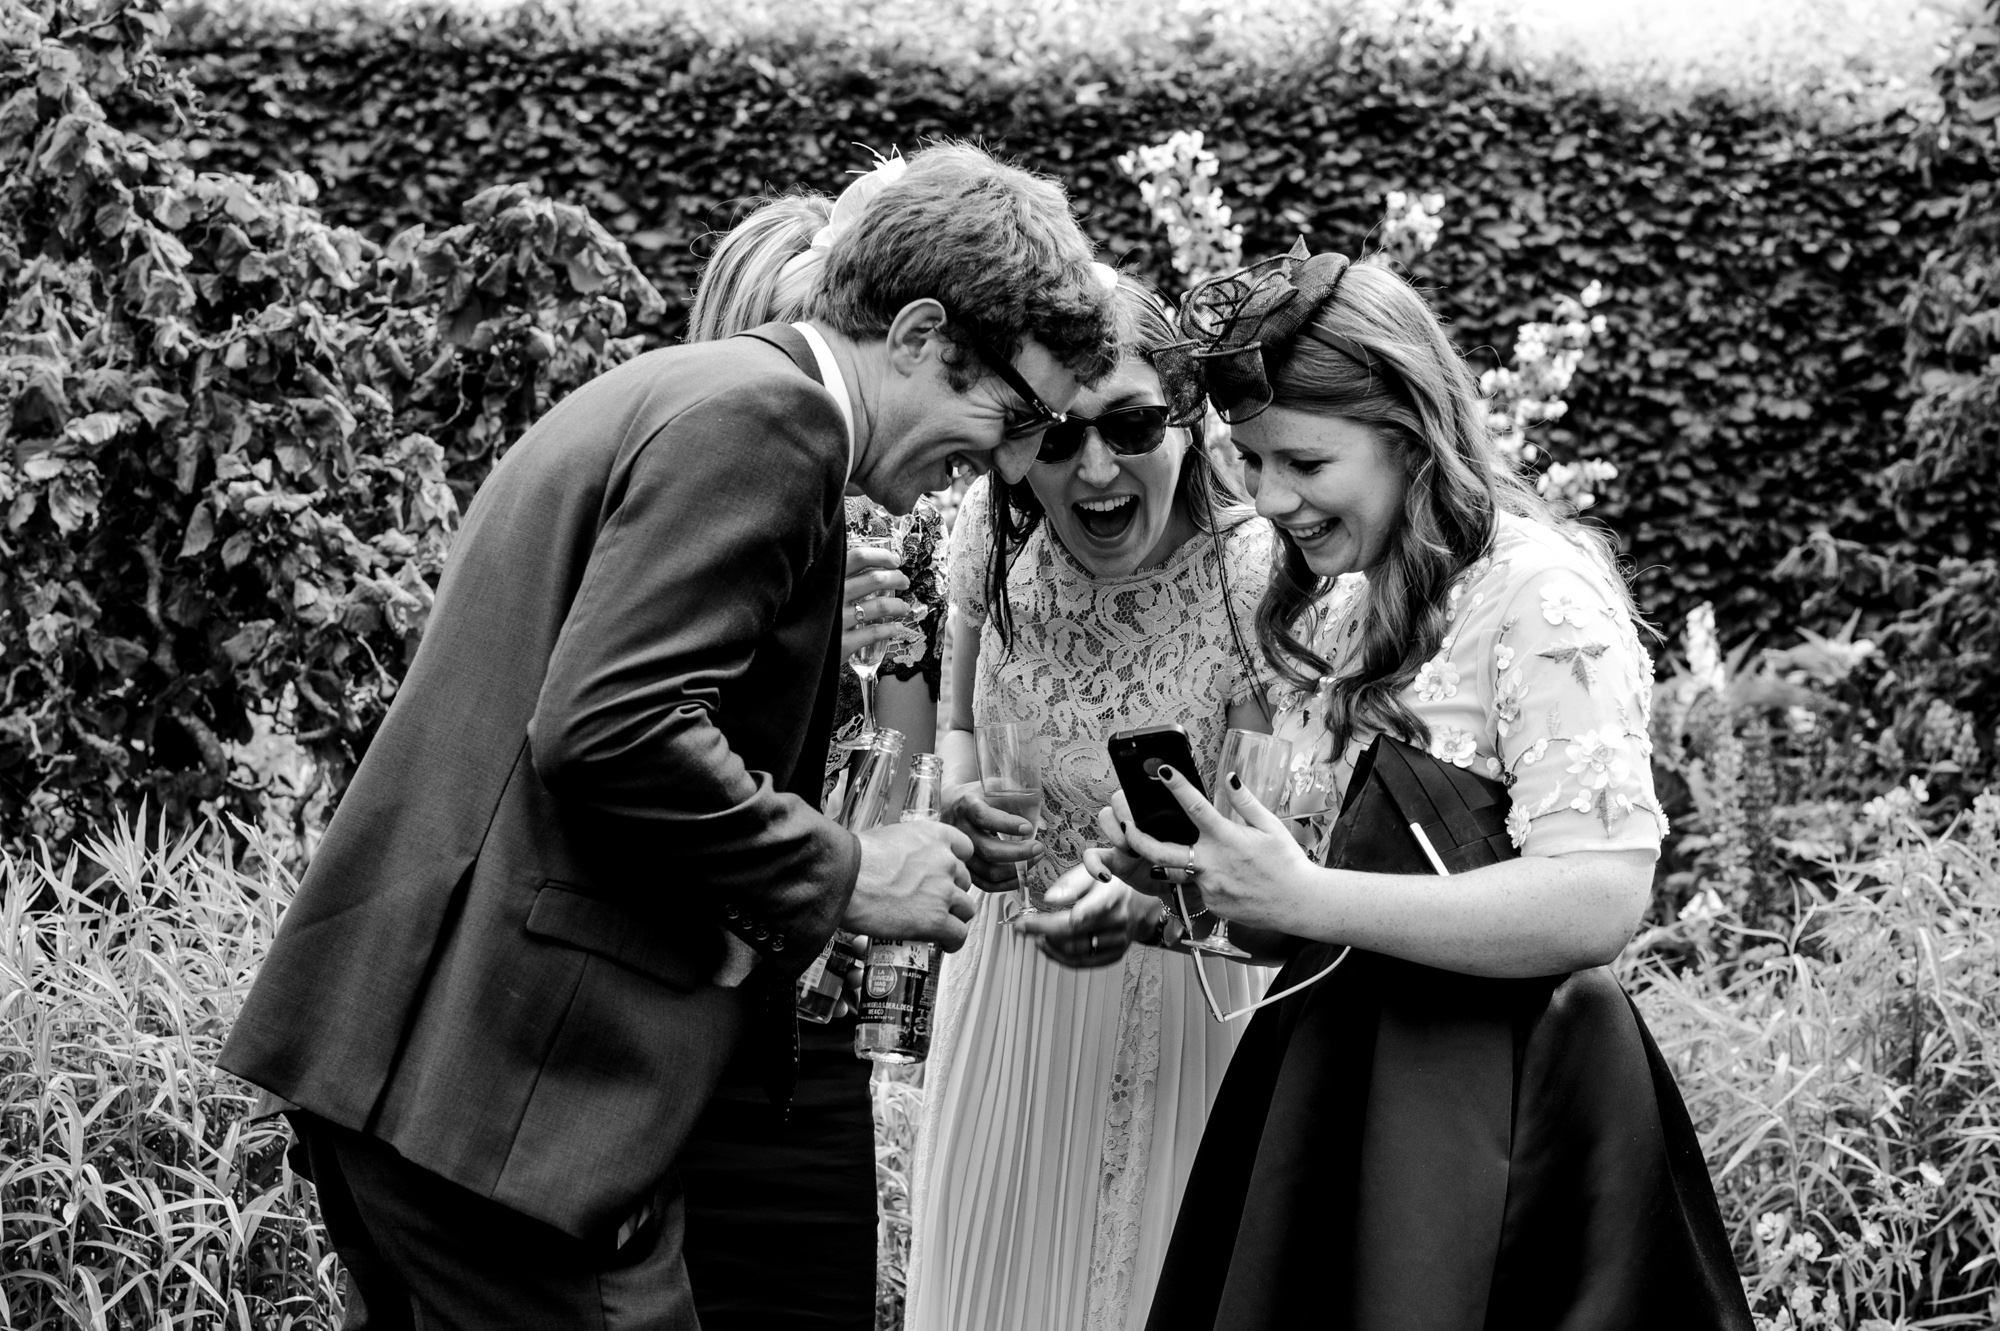 Cotswold Wedding Photography 11.09.1827.jpg